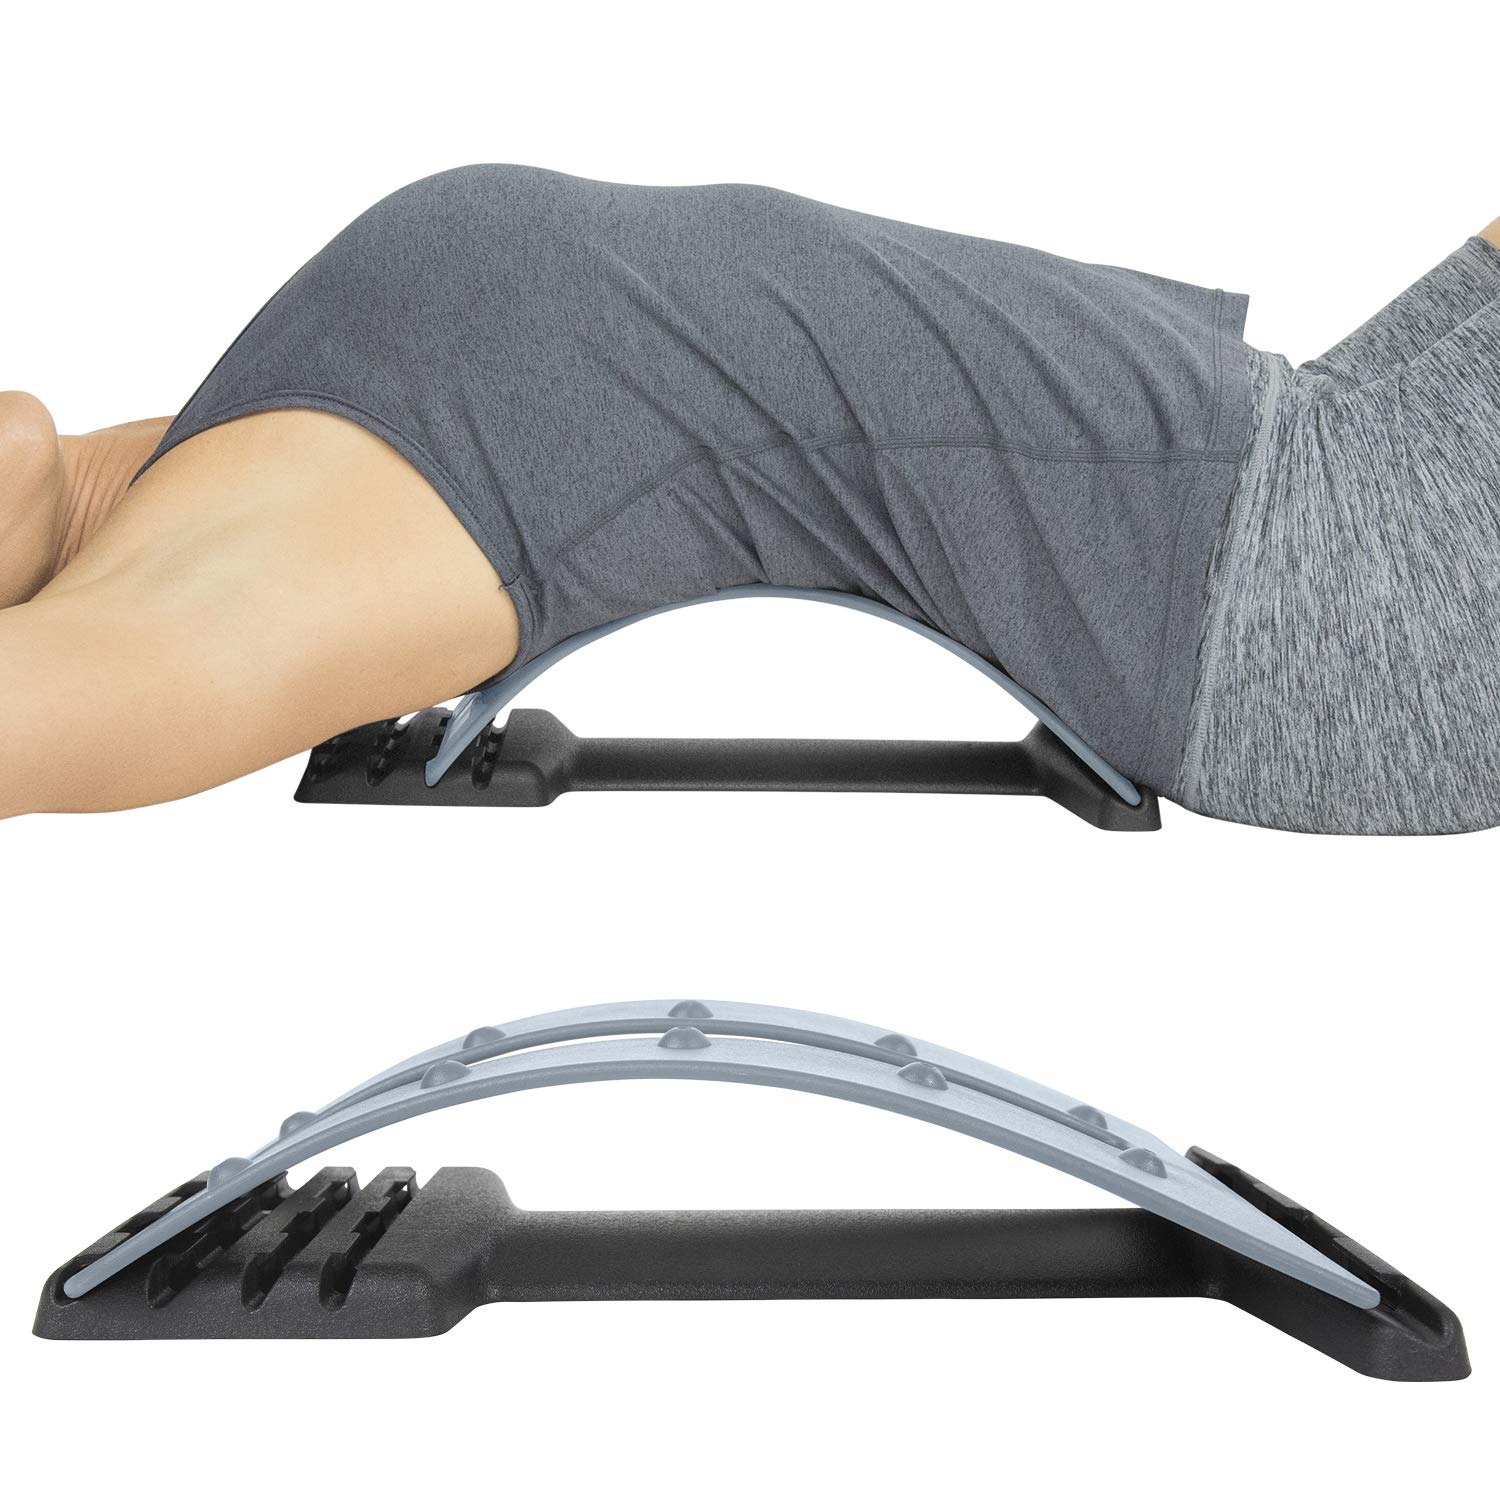 Vive Back Stretcher - 4 Posture Corrector Positions for Upper and Lower Lumbar Pain Relief, Herniated Disc, Spinal Stenosis - Orthopedic Low Spine Straightener Extension for Scoliosis - Men, Women by Vive